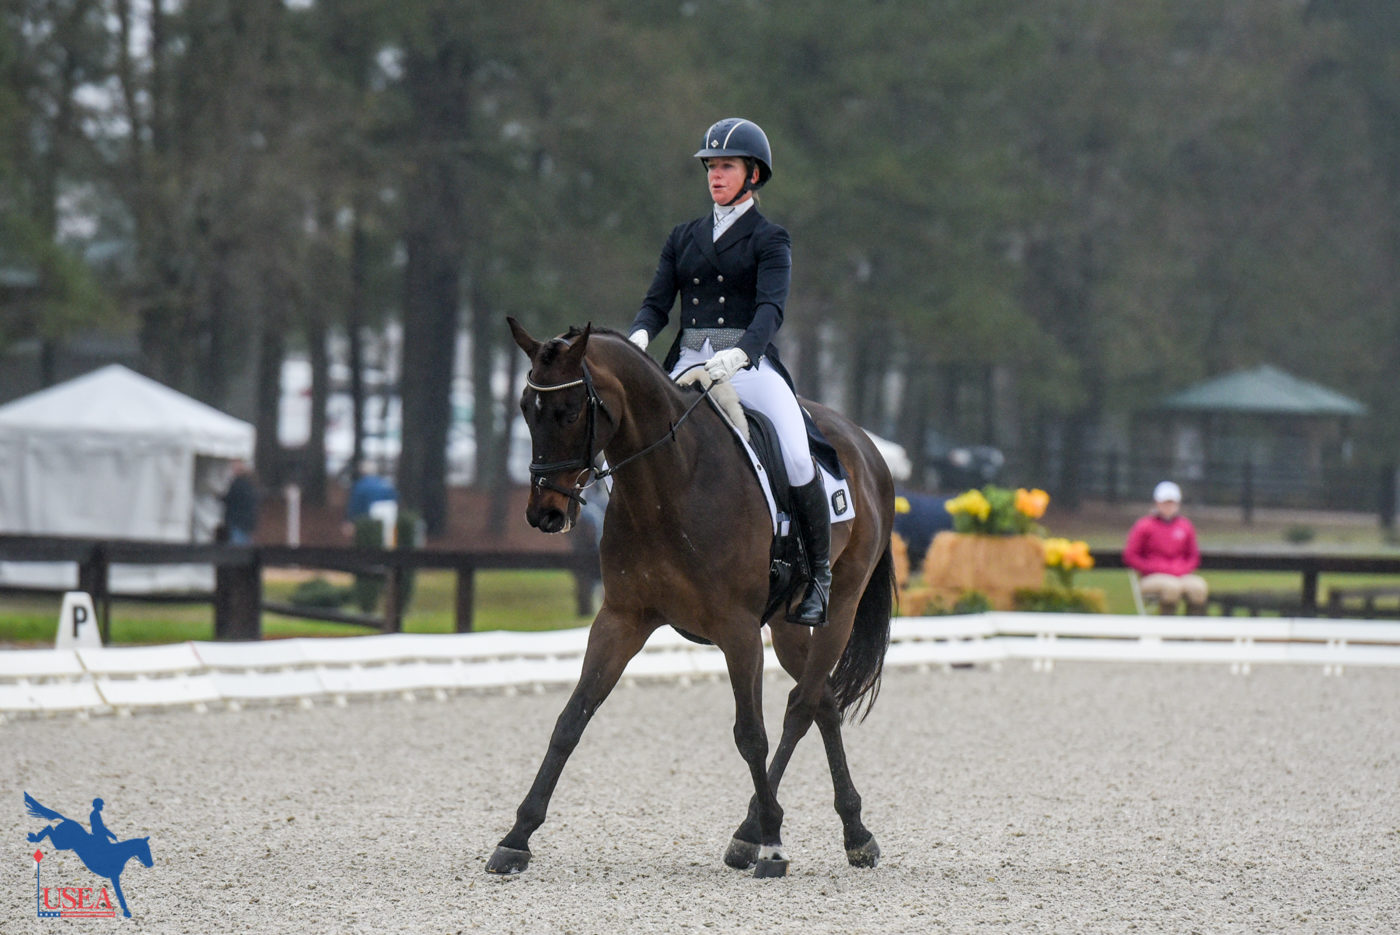 16thT - Alexandra Knowles and Sound Prospect - 34.6